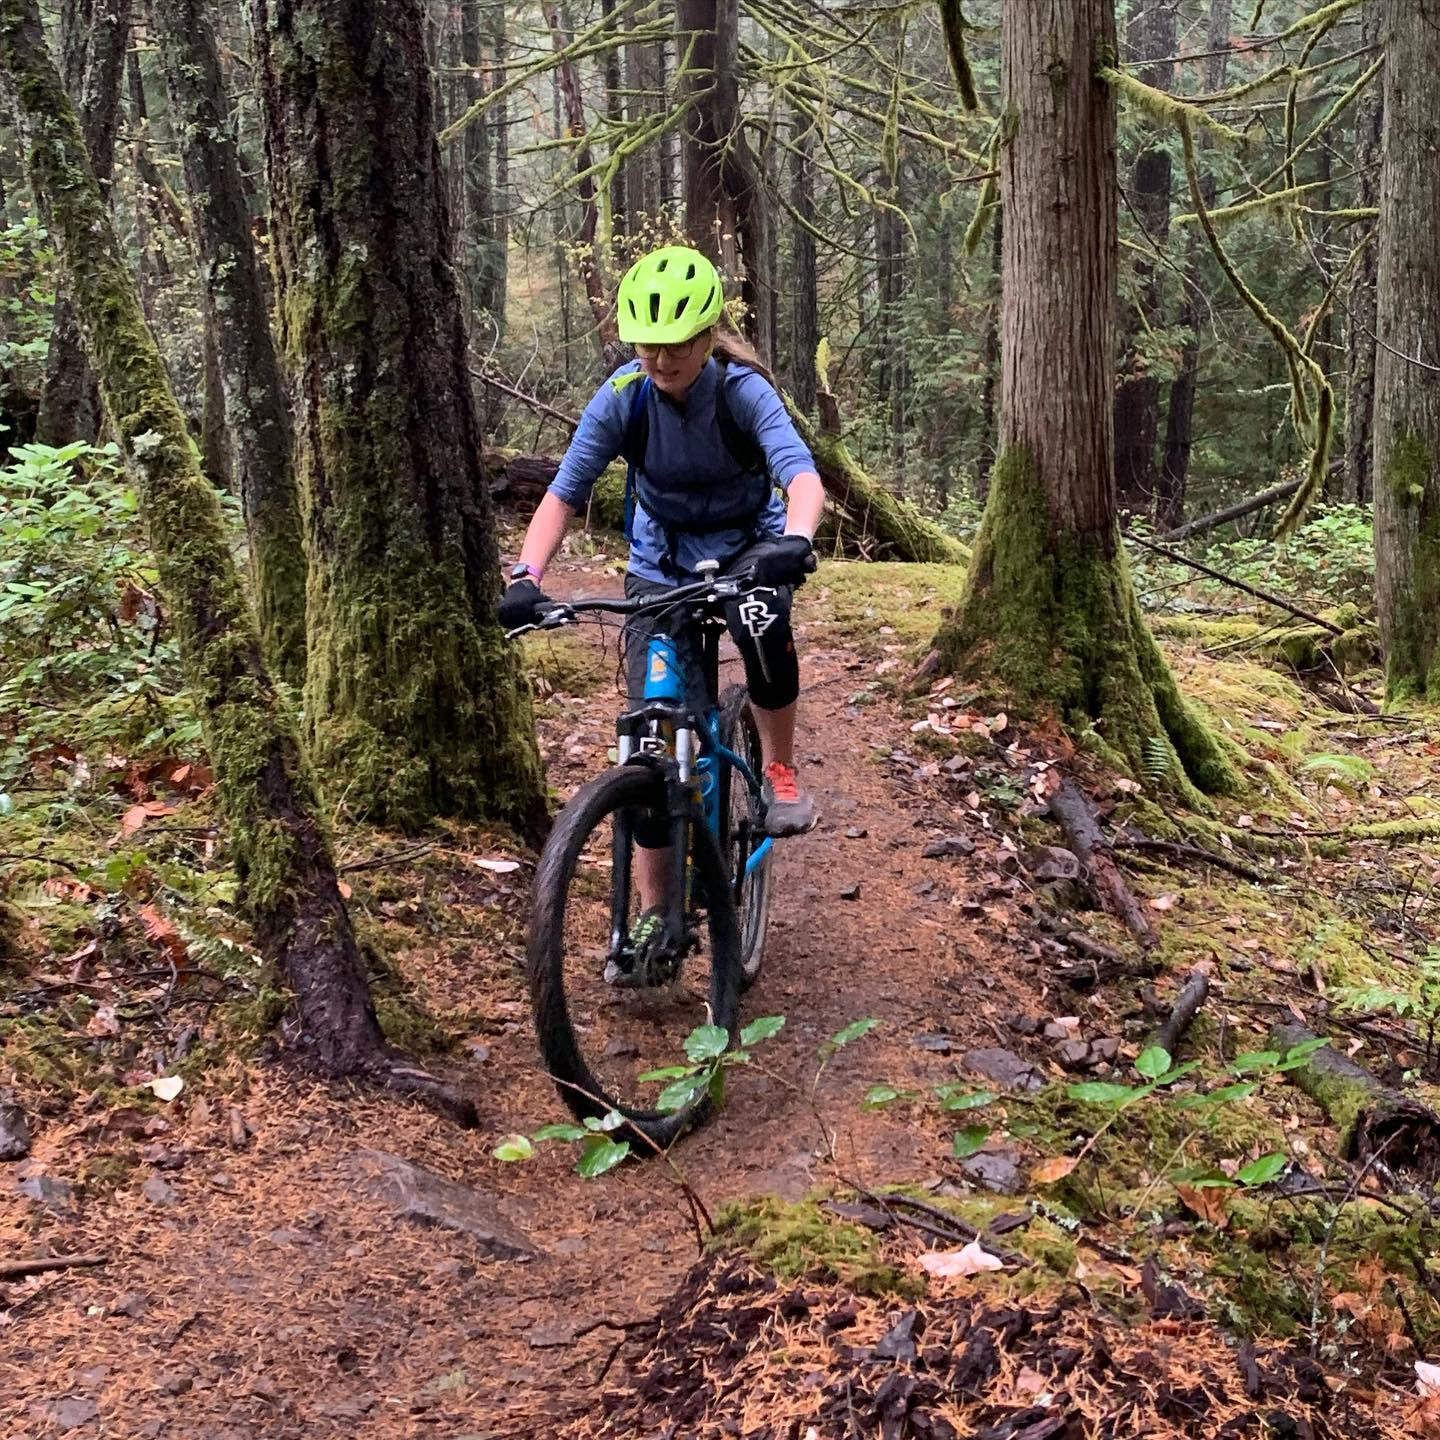 The kids and I went for a little spin out at the dump today. Great to see some moisture in the ground again. #mtbvi #yyj #mountainbiking #bikesarefun